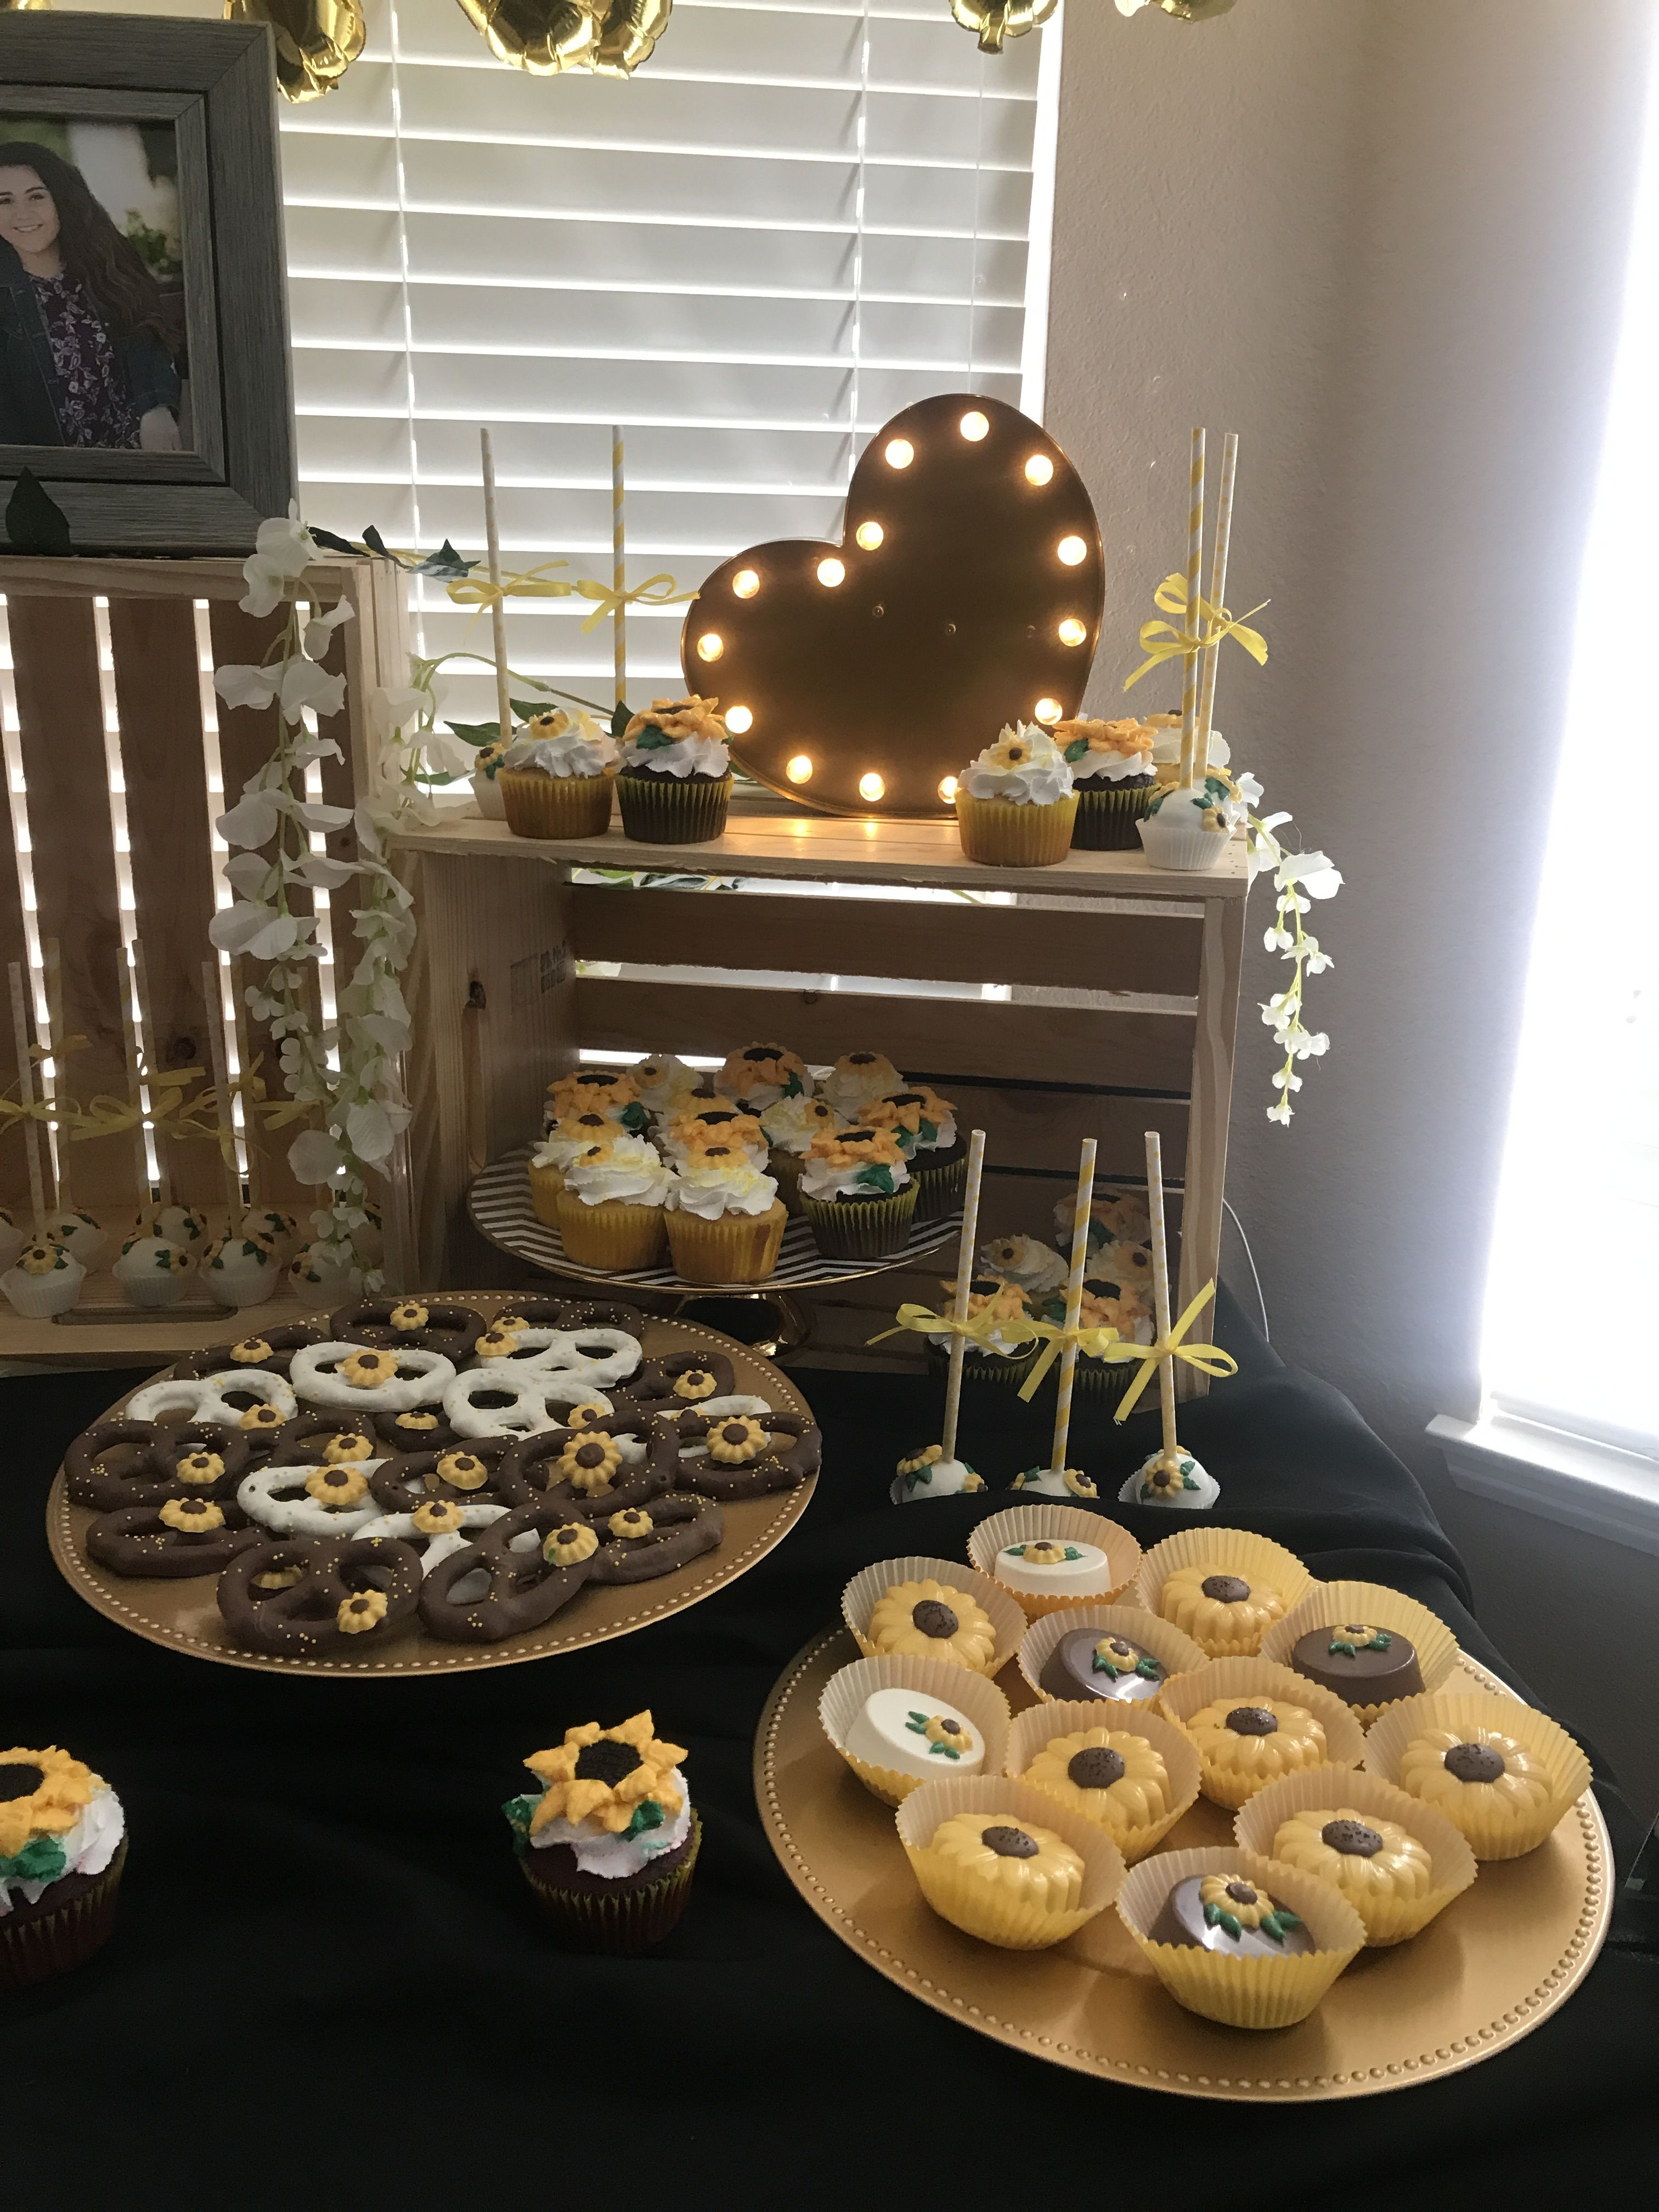 Sunflower Cake Table Sunflower cakes, Cake table, Table